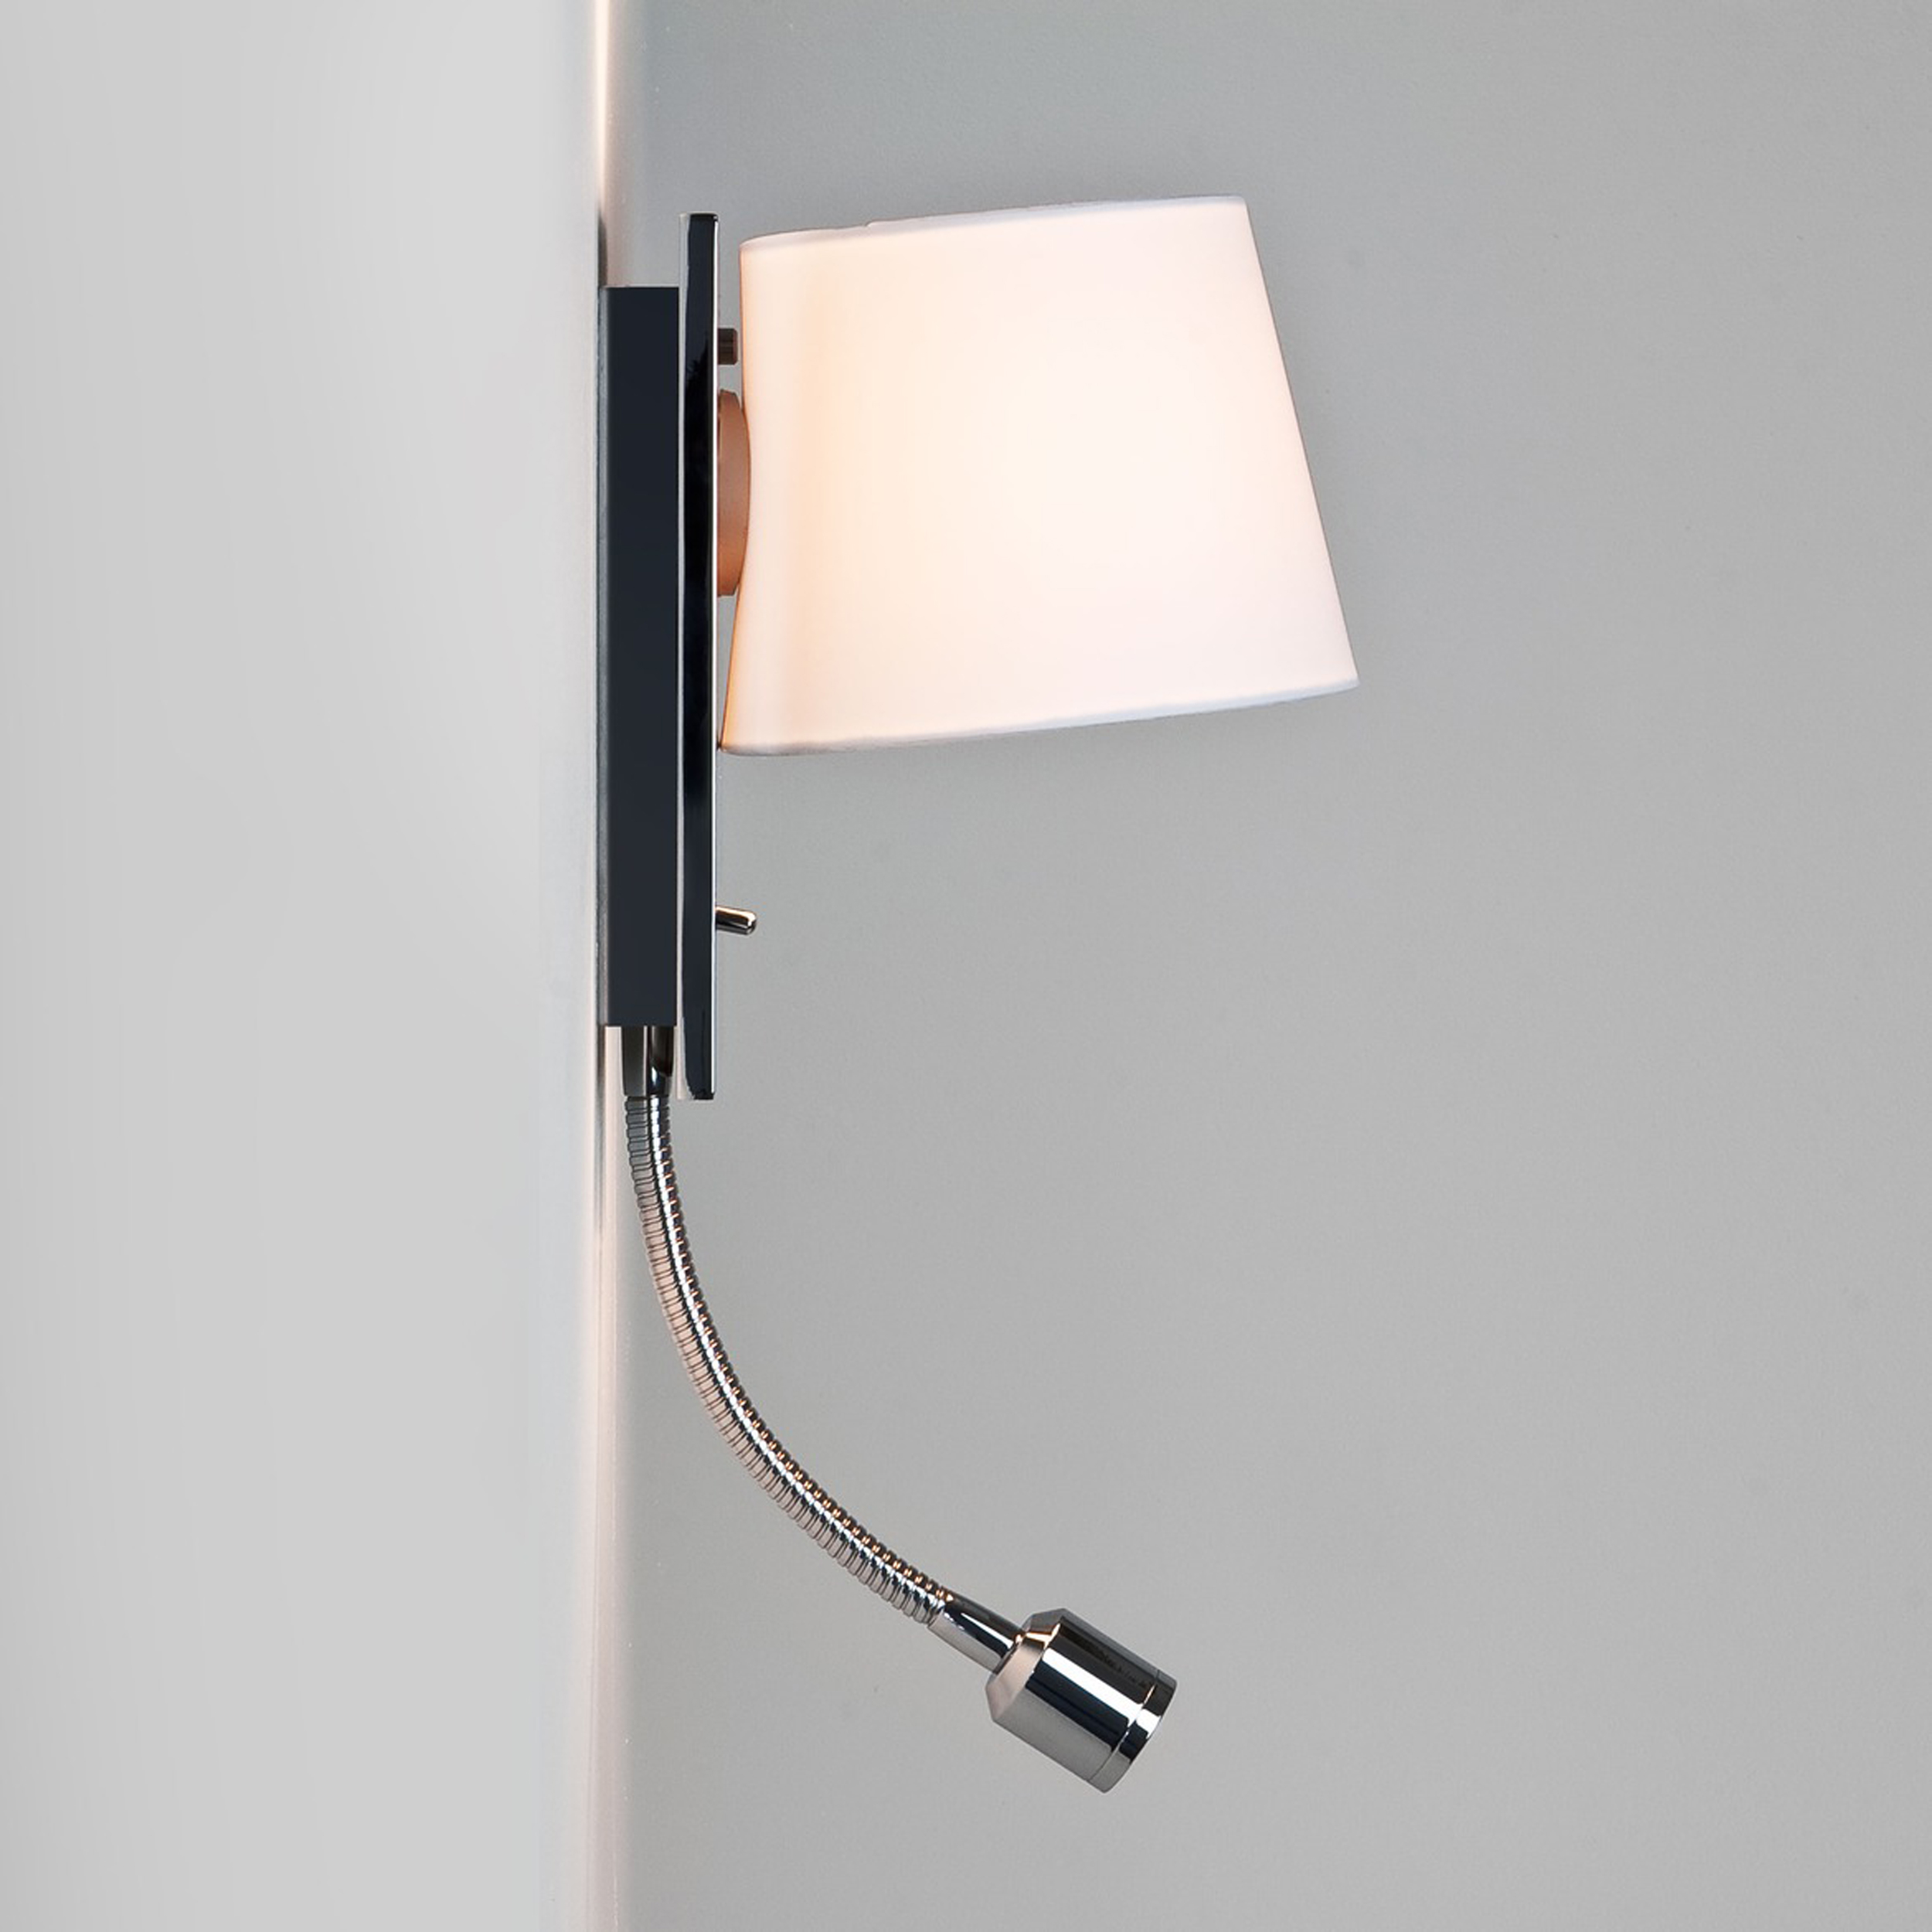 Astro Sala Reader Wall Light Polished Chrome B